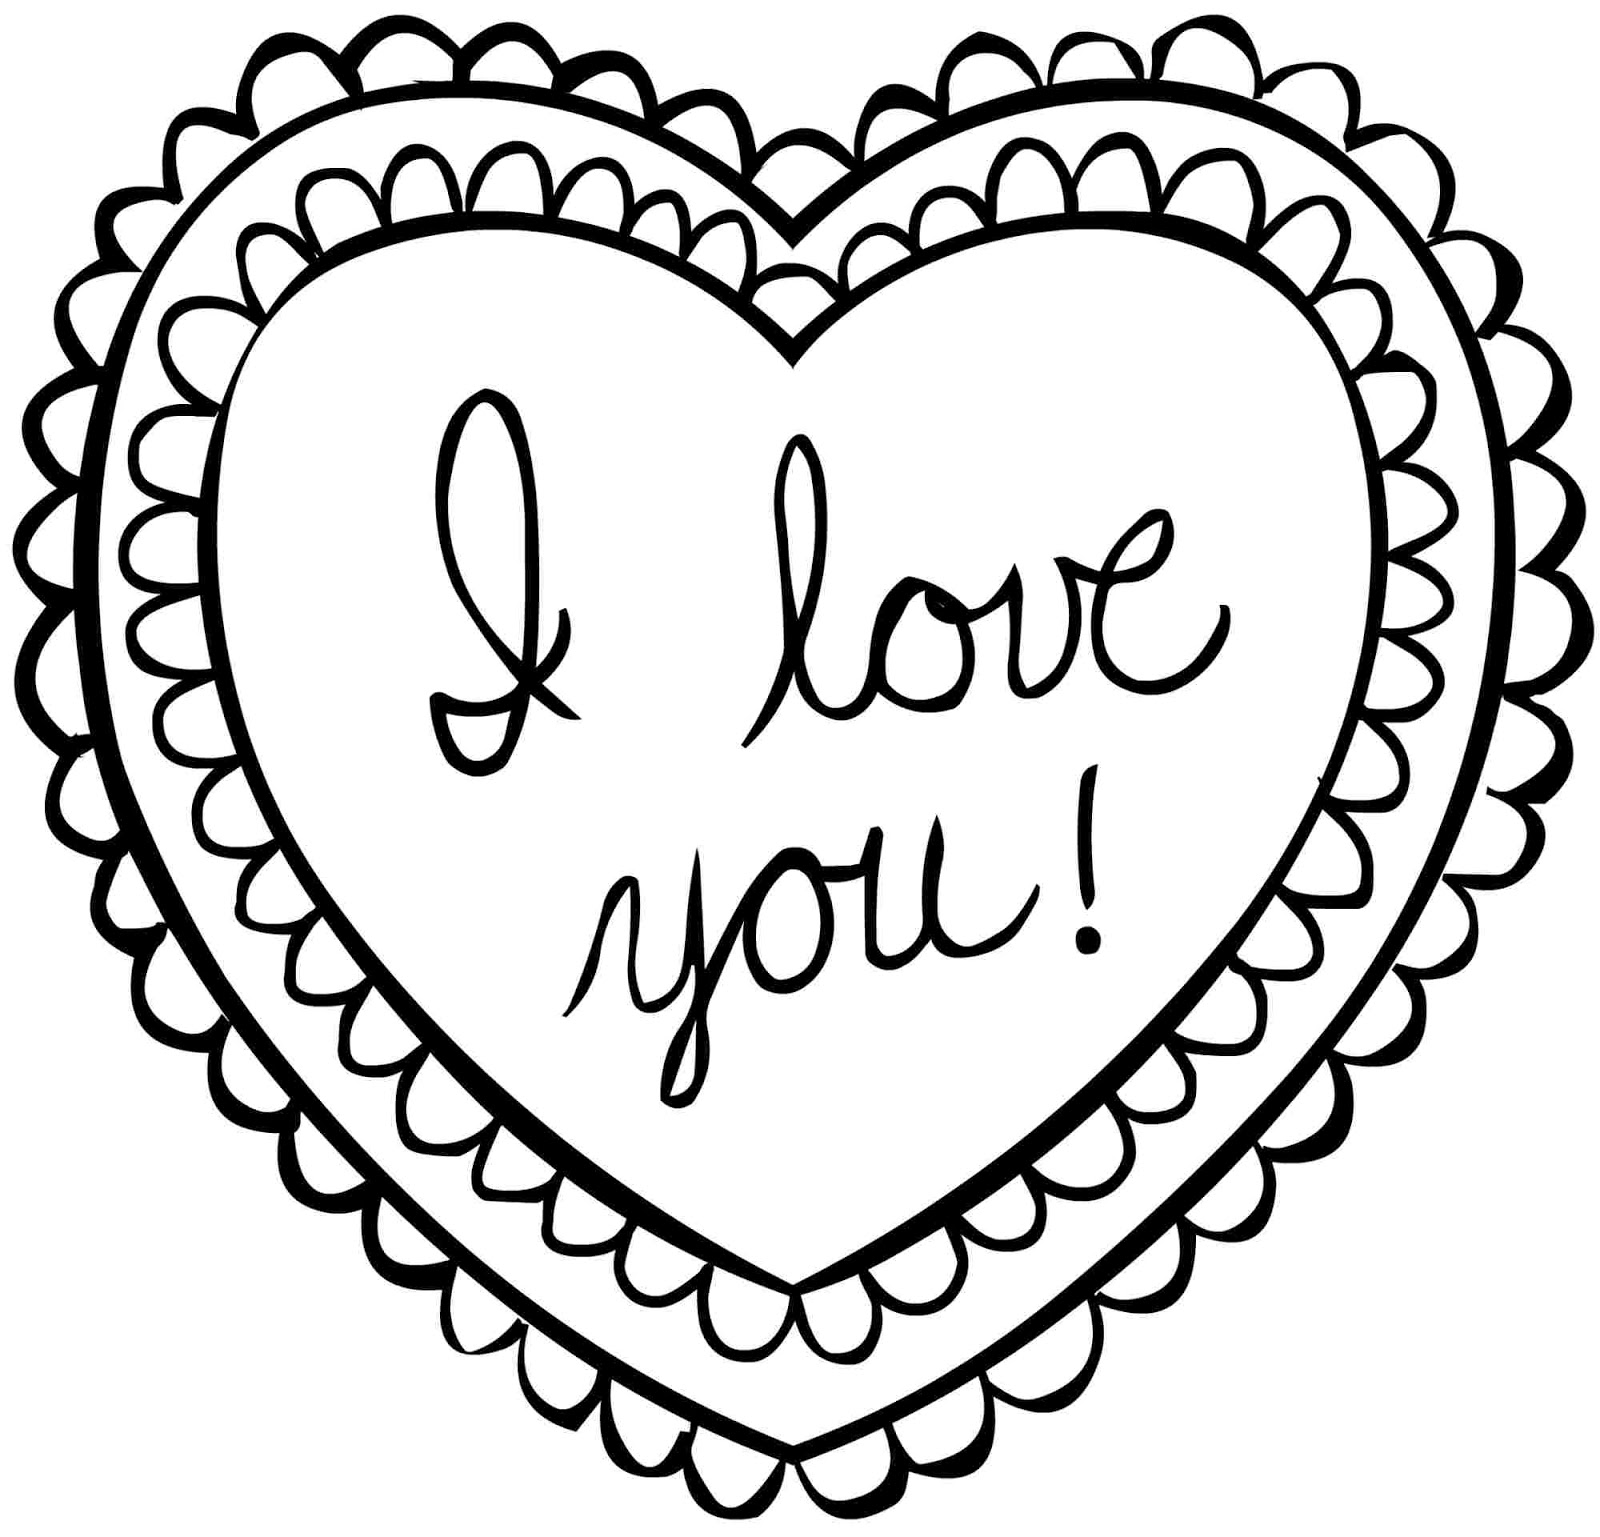 free printable heart coloring pages for kids free printable heart coloring pages for kids heart cute coloring pages free kids printable for heart